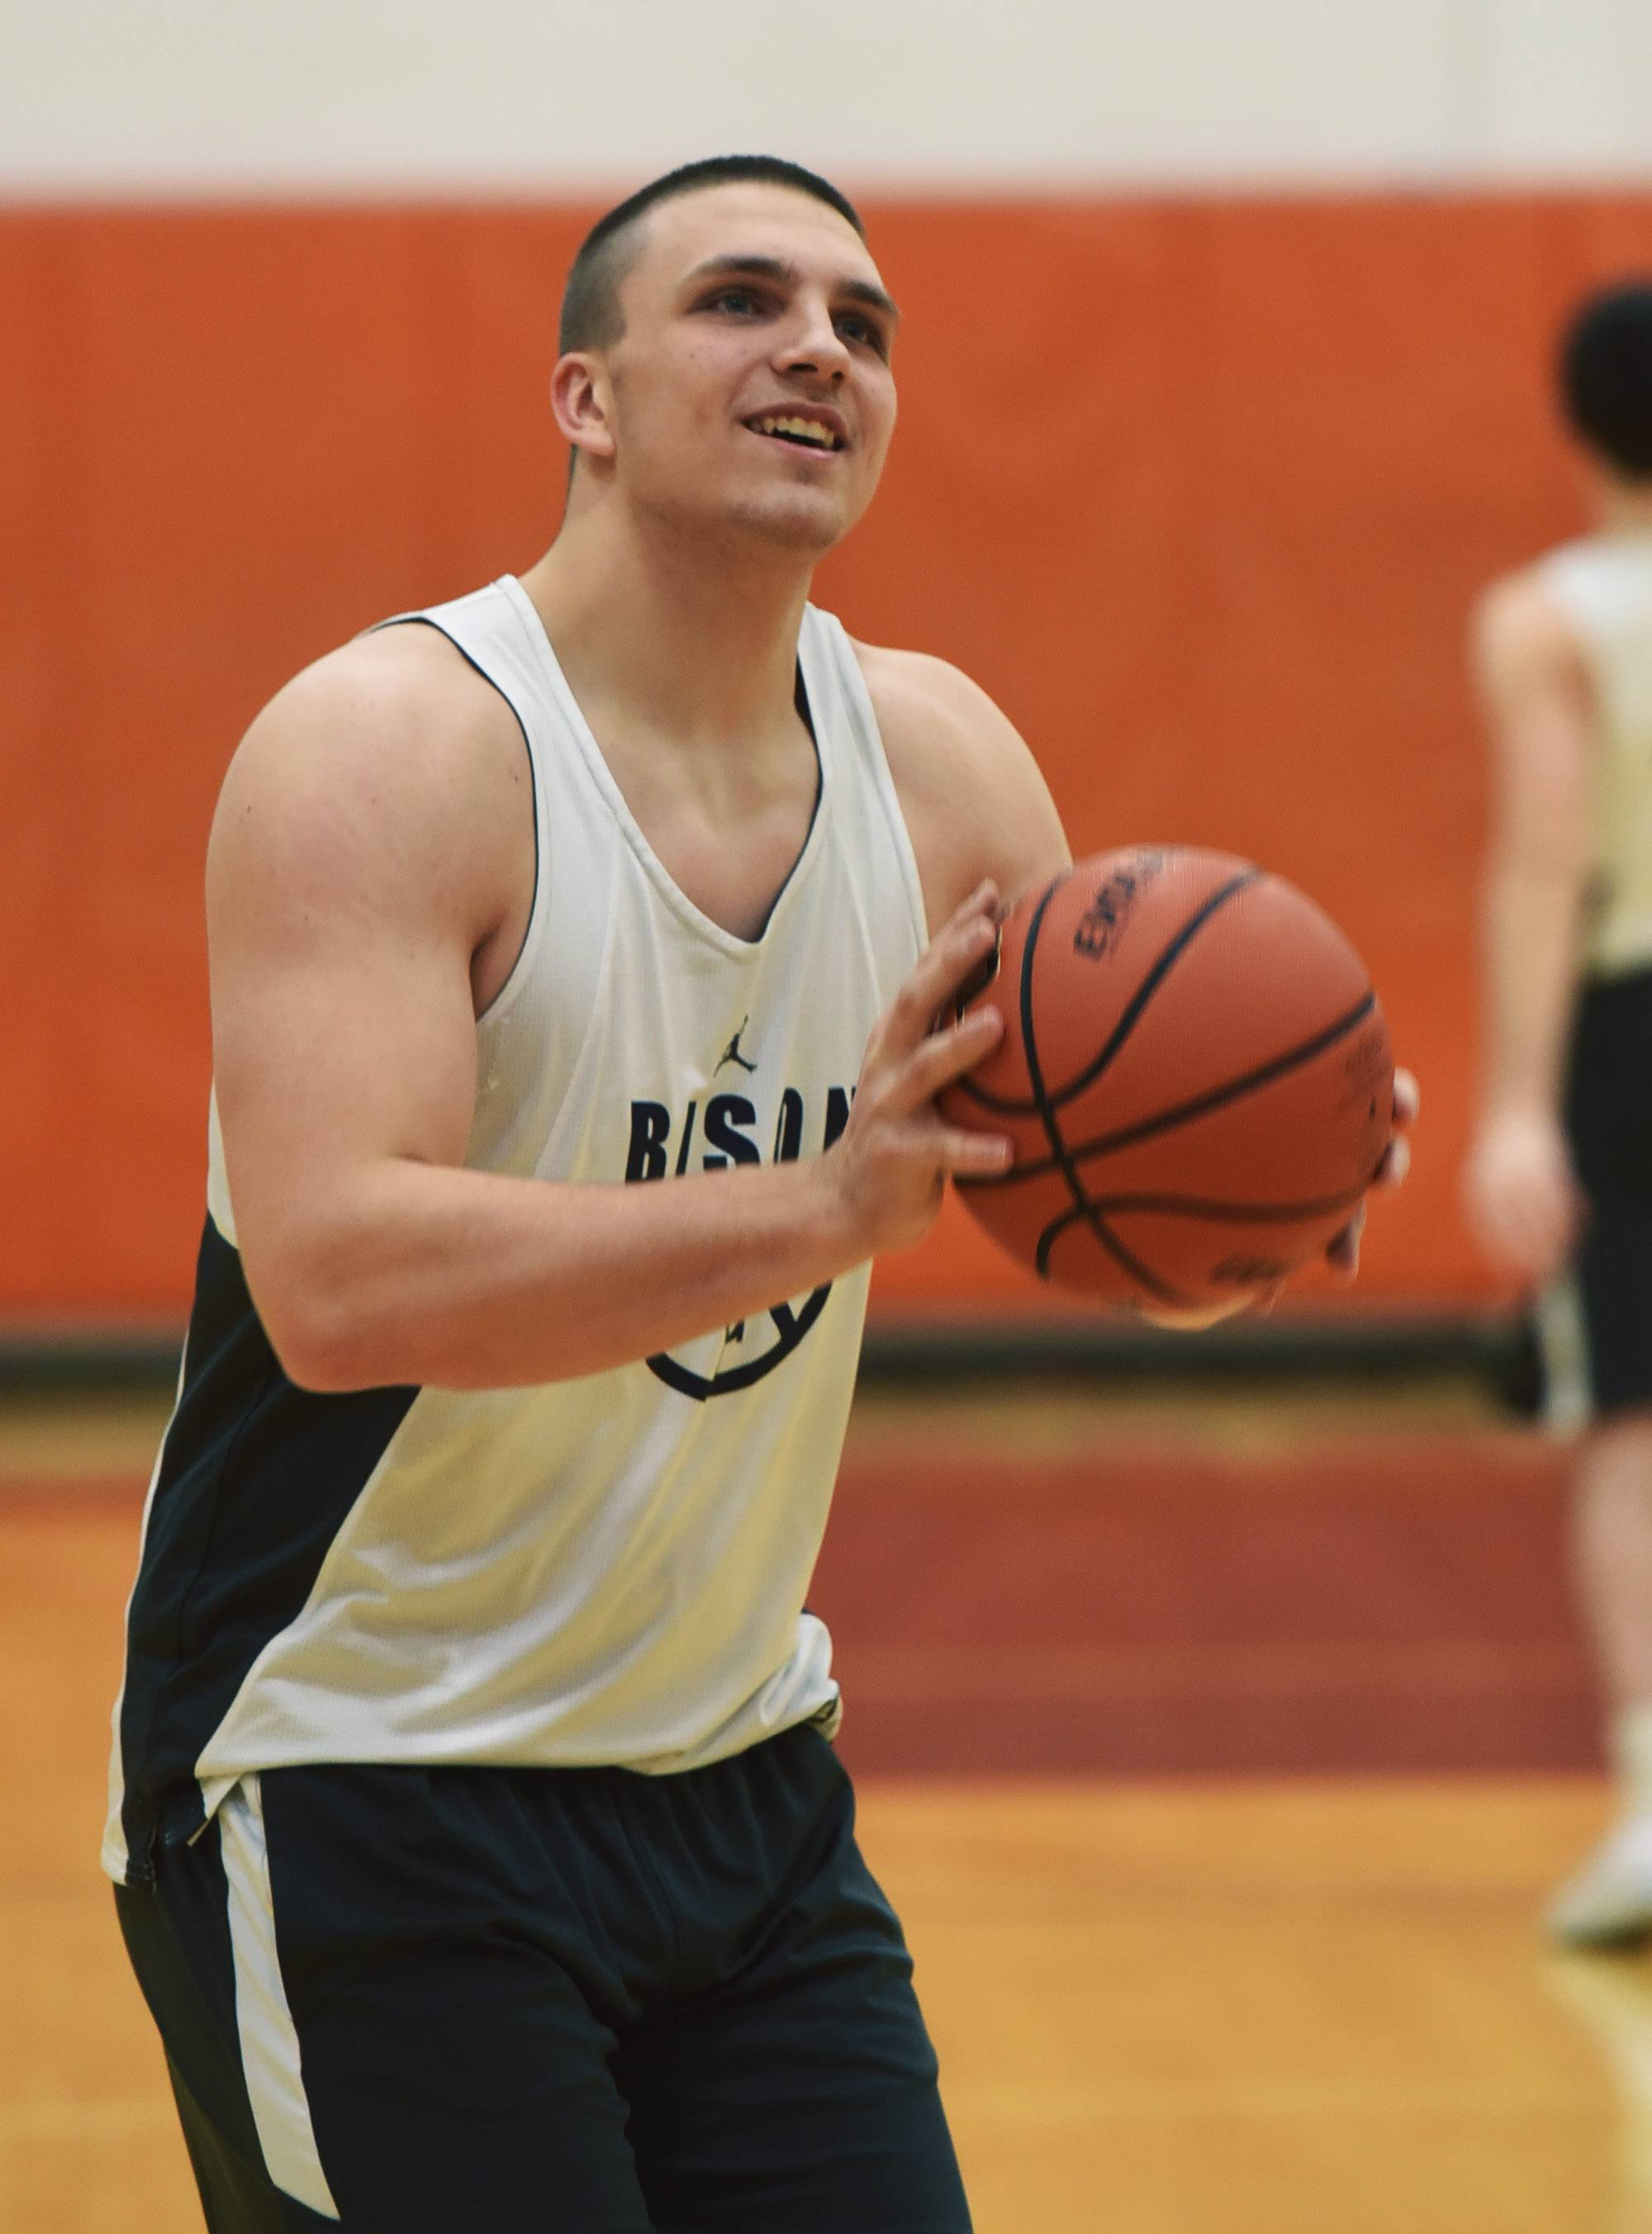 Buffalo Grove boys basketball player Tom Trieb shoots during practice.